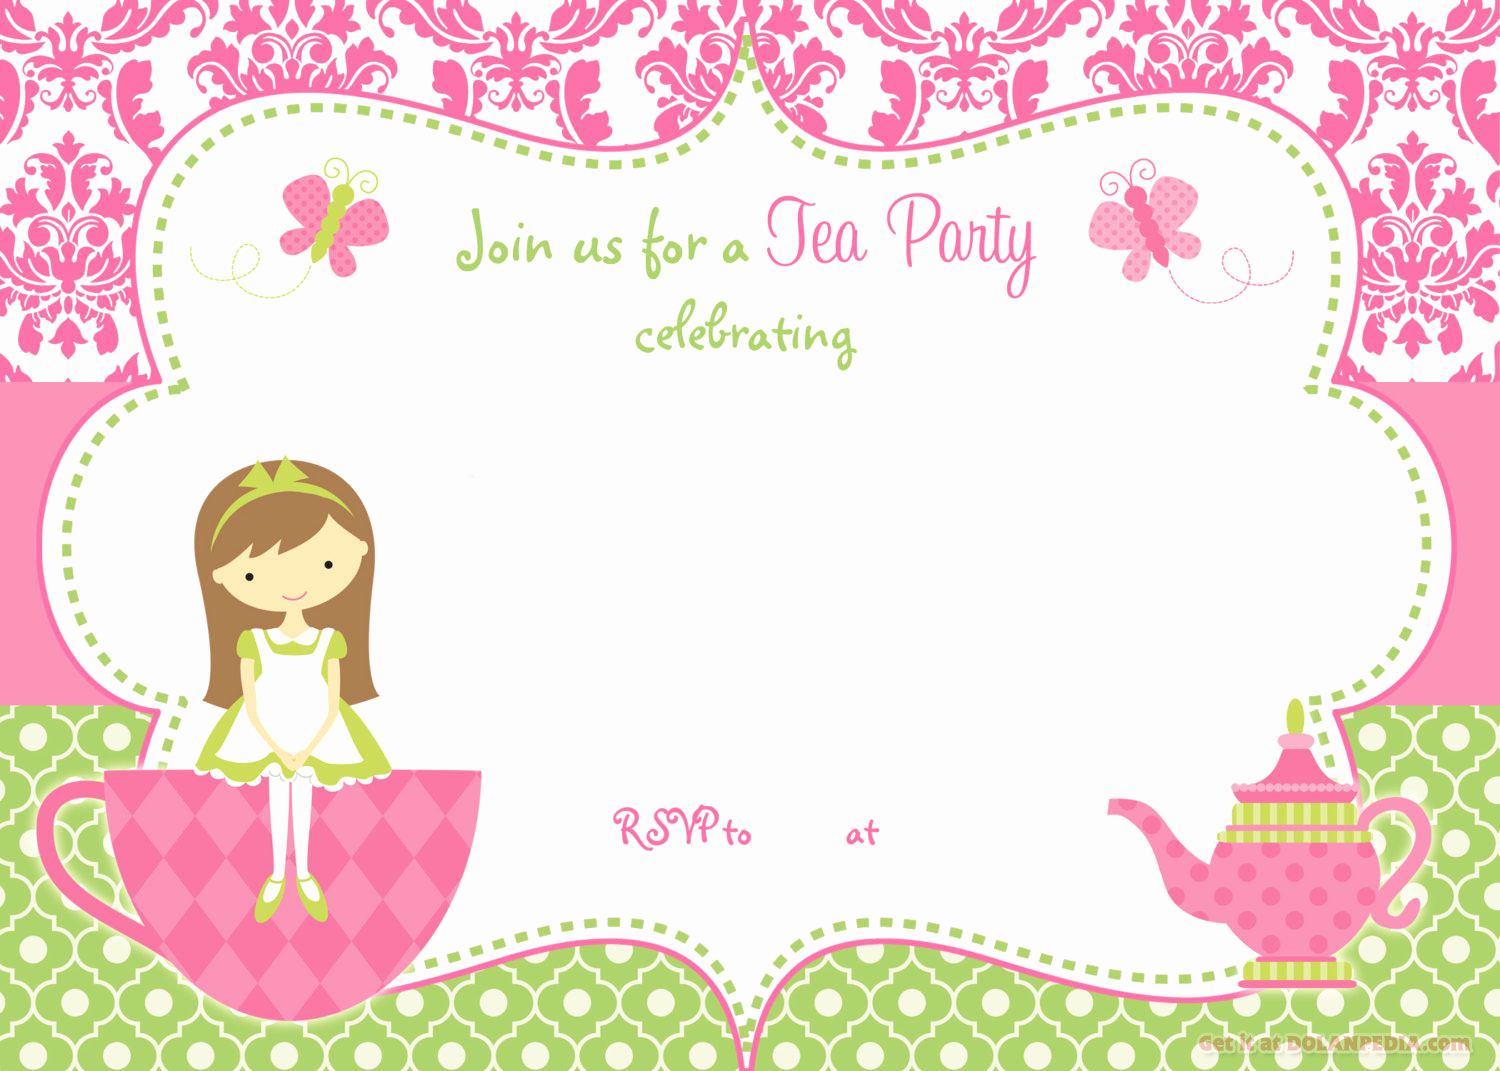 Tea Party Invitation Templates Beautiful Free Printable Tea Party Invitation Template for Girl